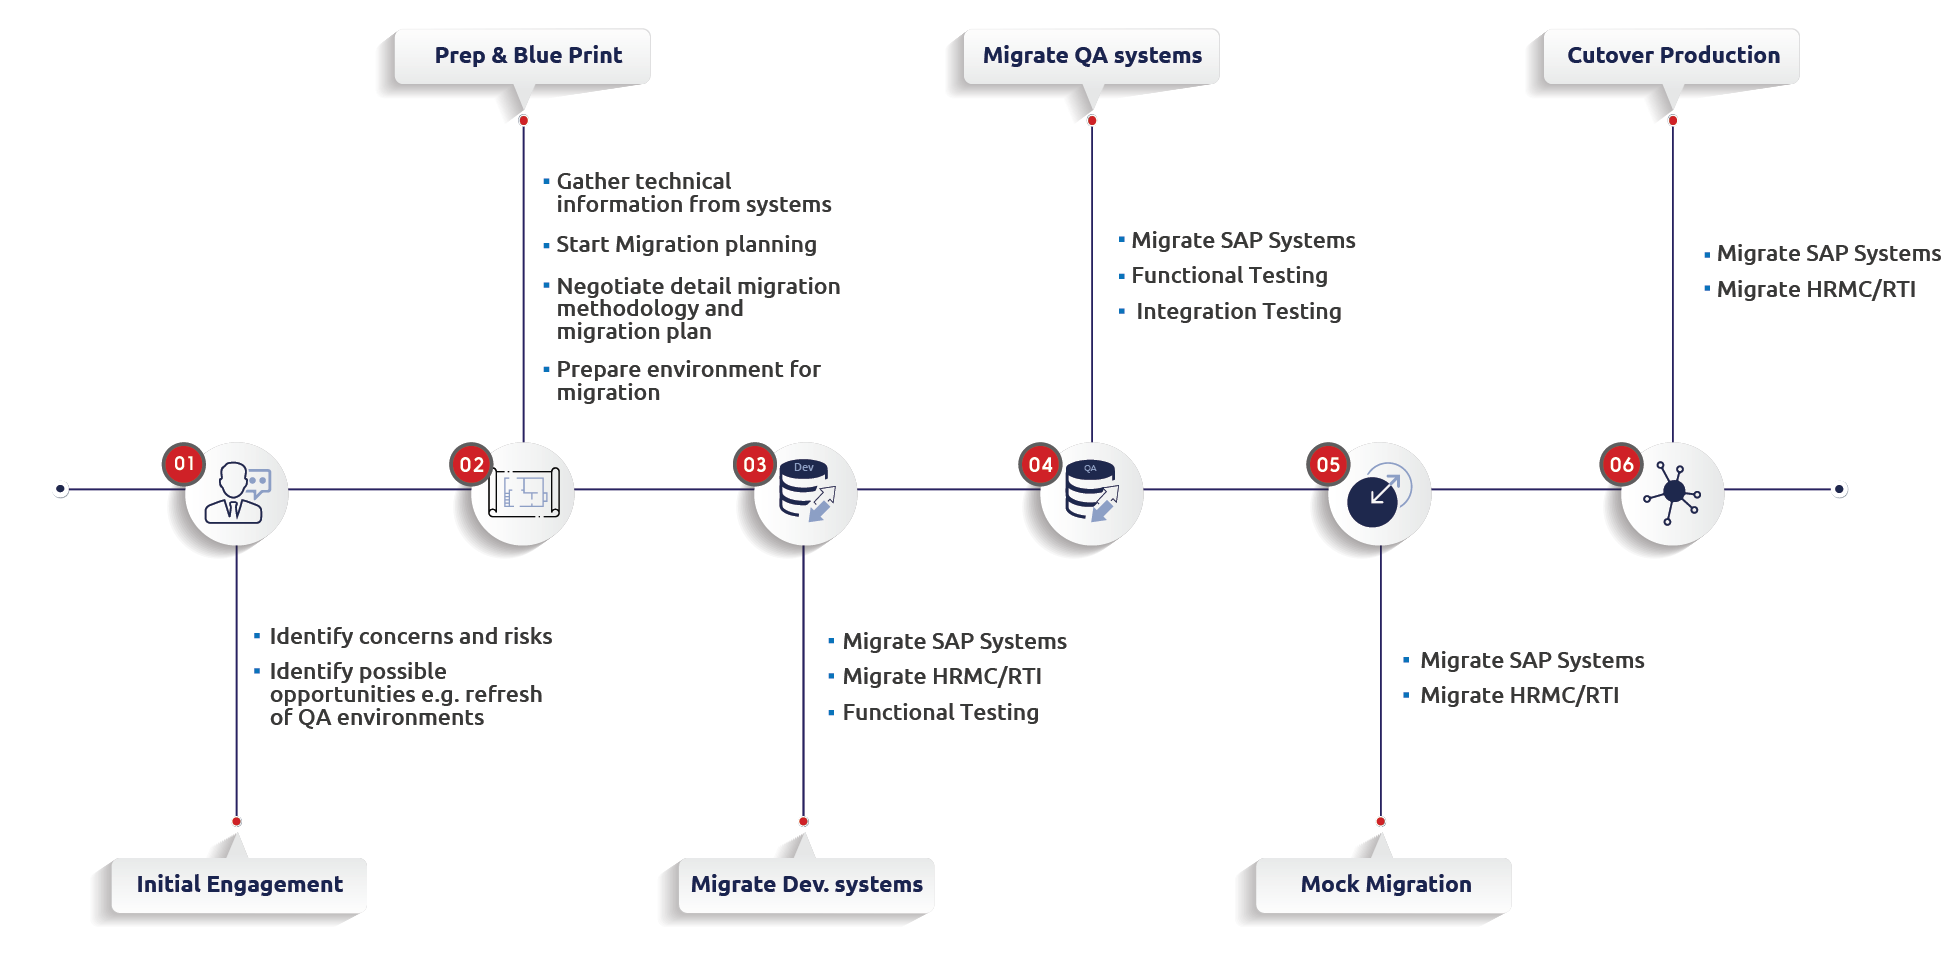 An iterative migration process